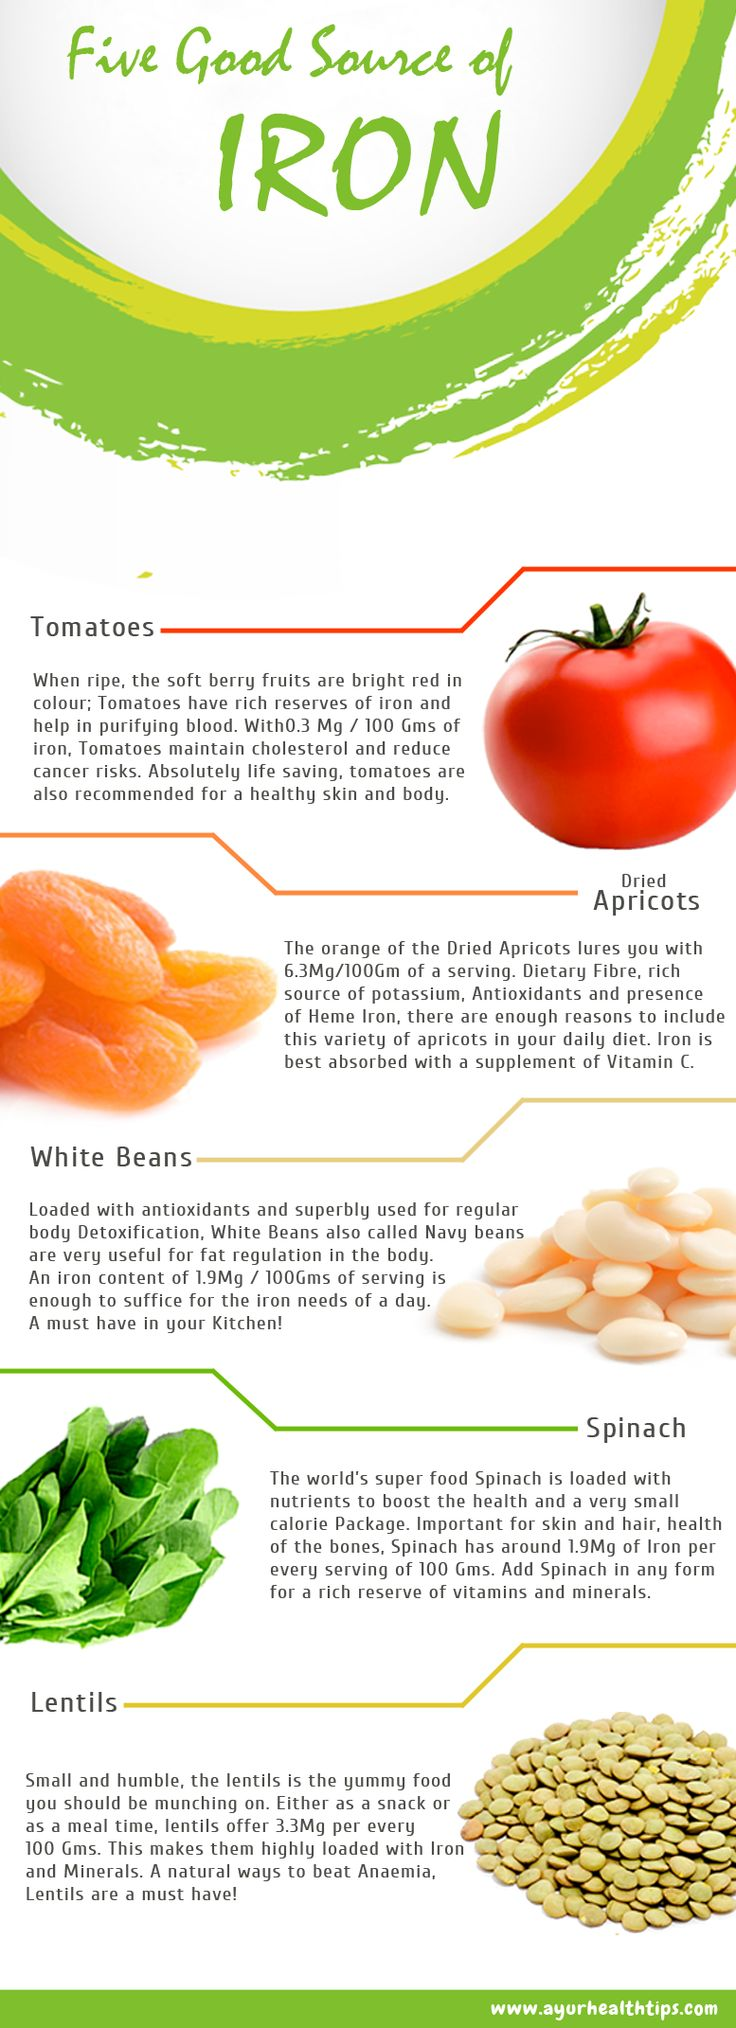 Best 25+ Good sources of iron ideas on Pinterest | Natural sources ...